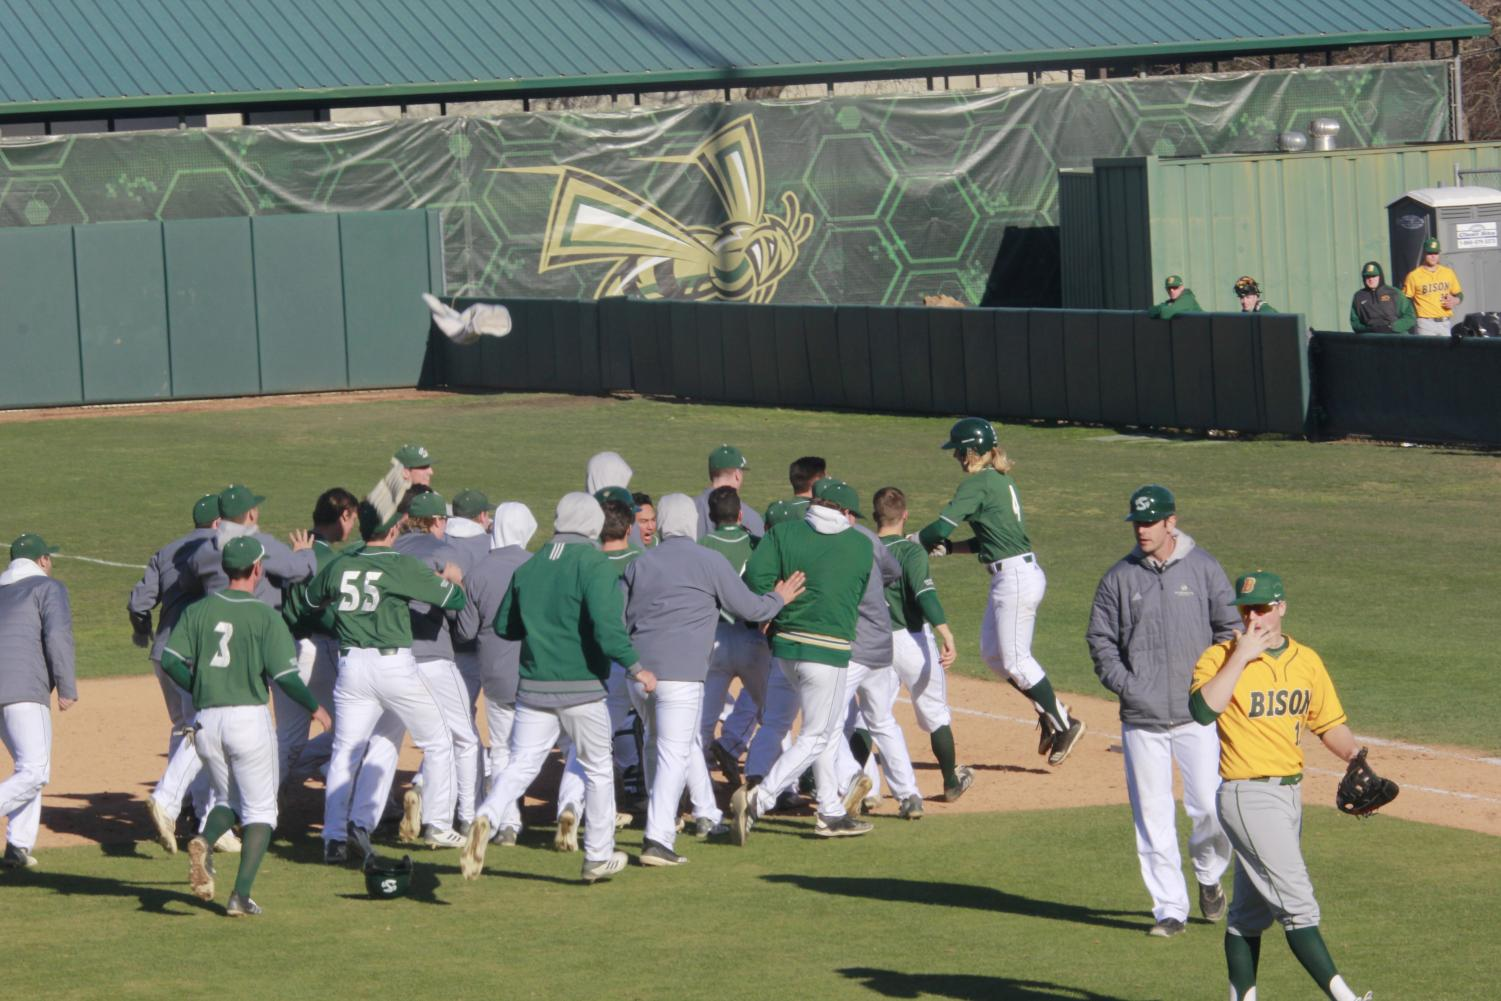 The+Sac+State+baseball+team+celebrate+a+walk-off+hit+by+sophomore+infielder+Nick+Iwasa+in+a+2-1+win+over+North+Dakota+St.+on+Sunday%2C+Feb.+17+at+John+Smith+Field.